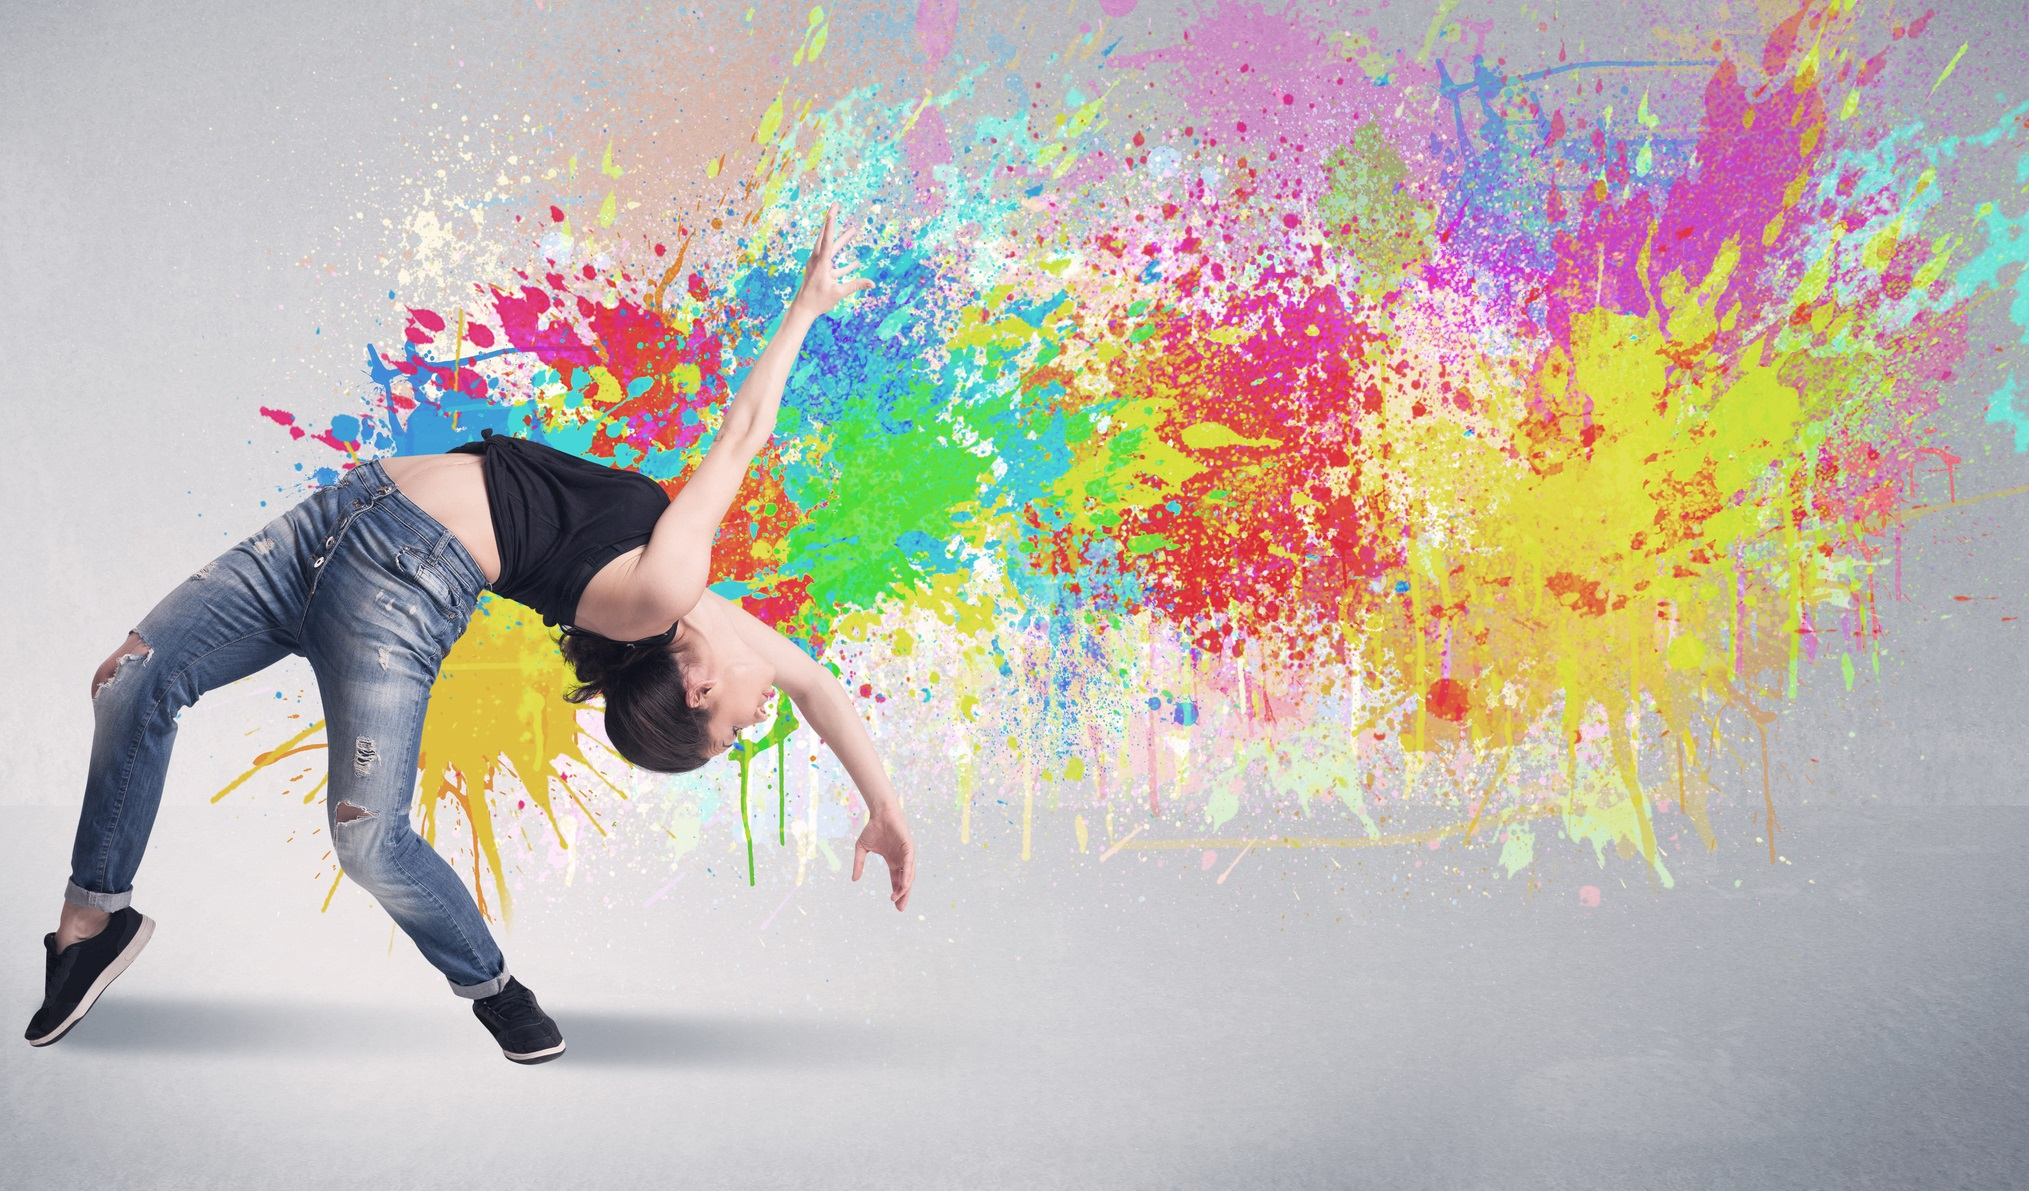 The Power of Color: How colors affect your moods